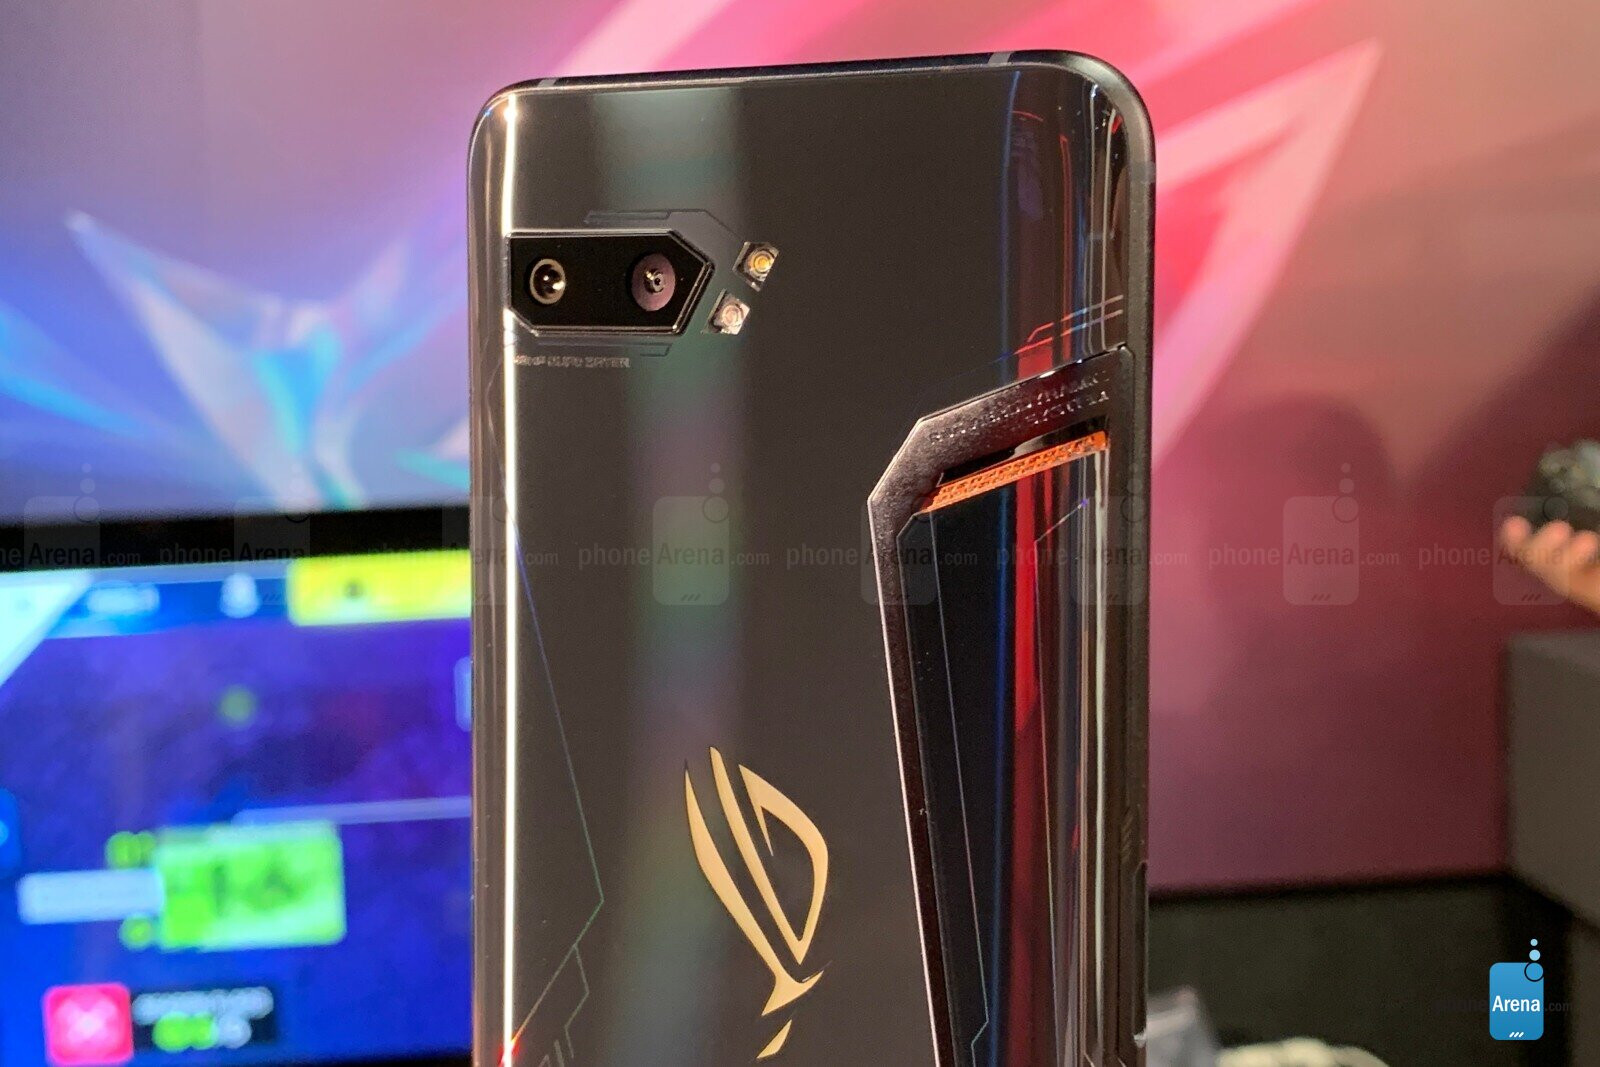 Asus ROG Phone 2 is a ridiculously powerful Android phone